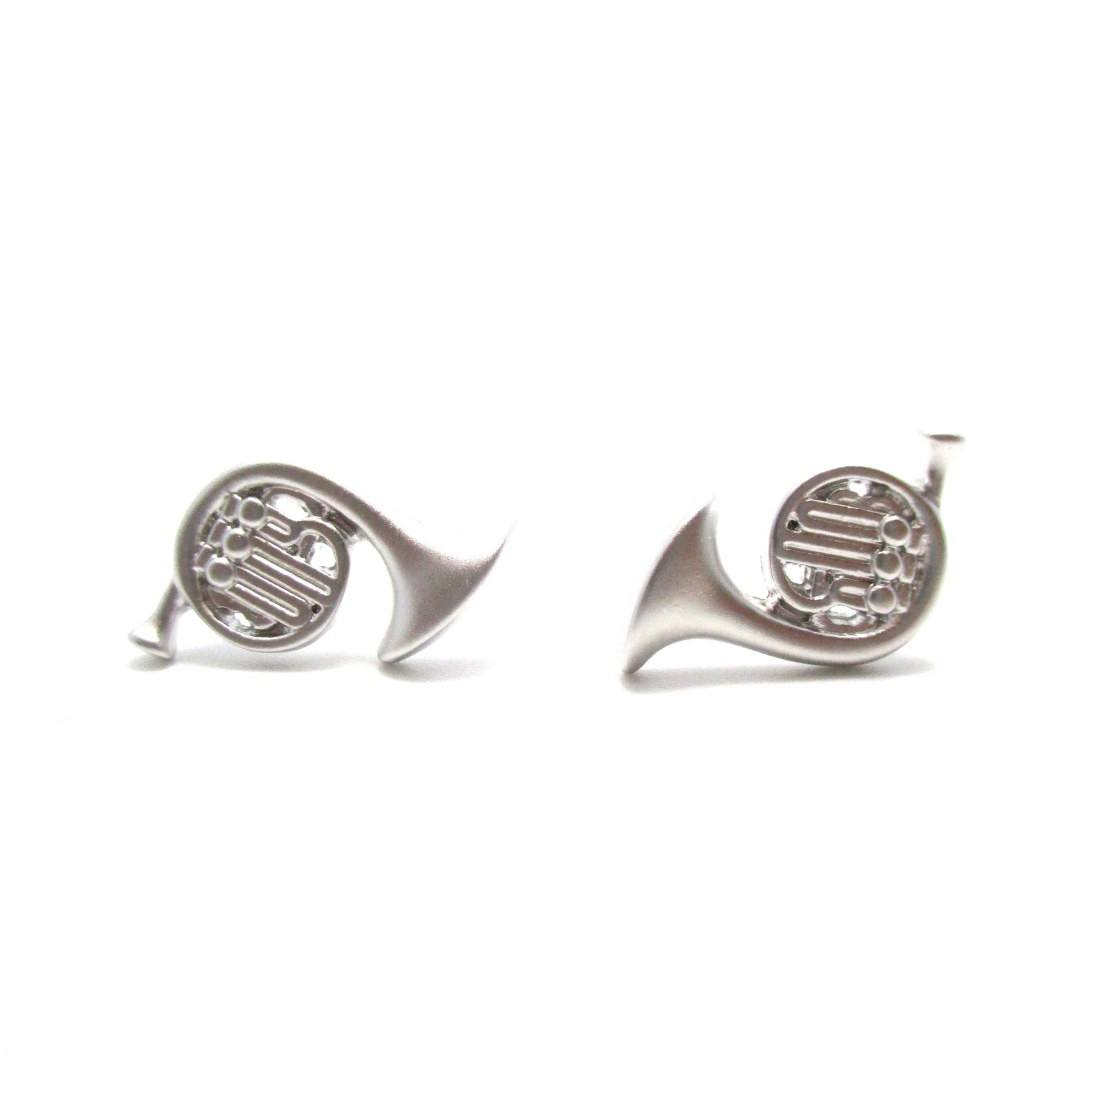 3D French Horn Shaped Stud Earrings in Silver | DOTOLY